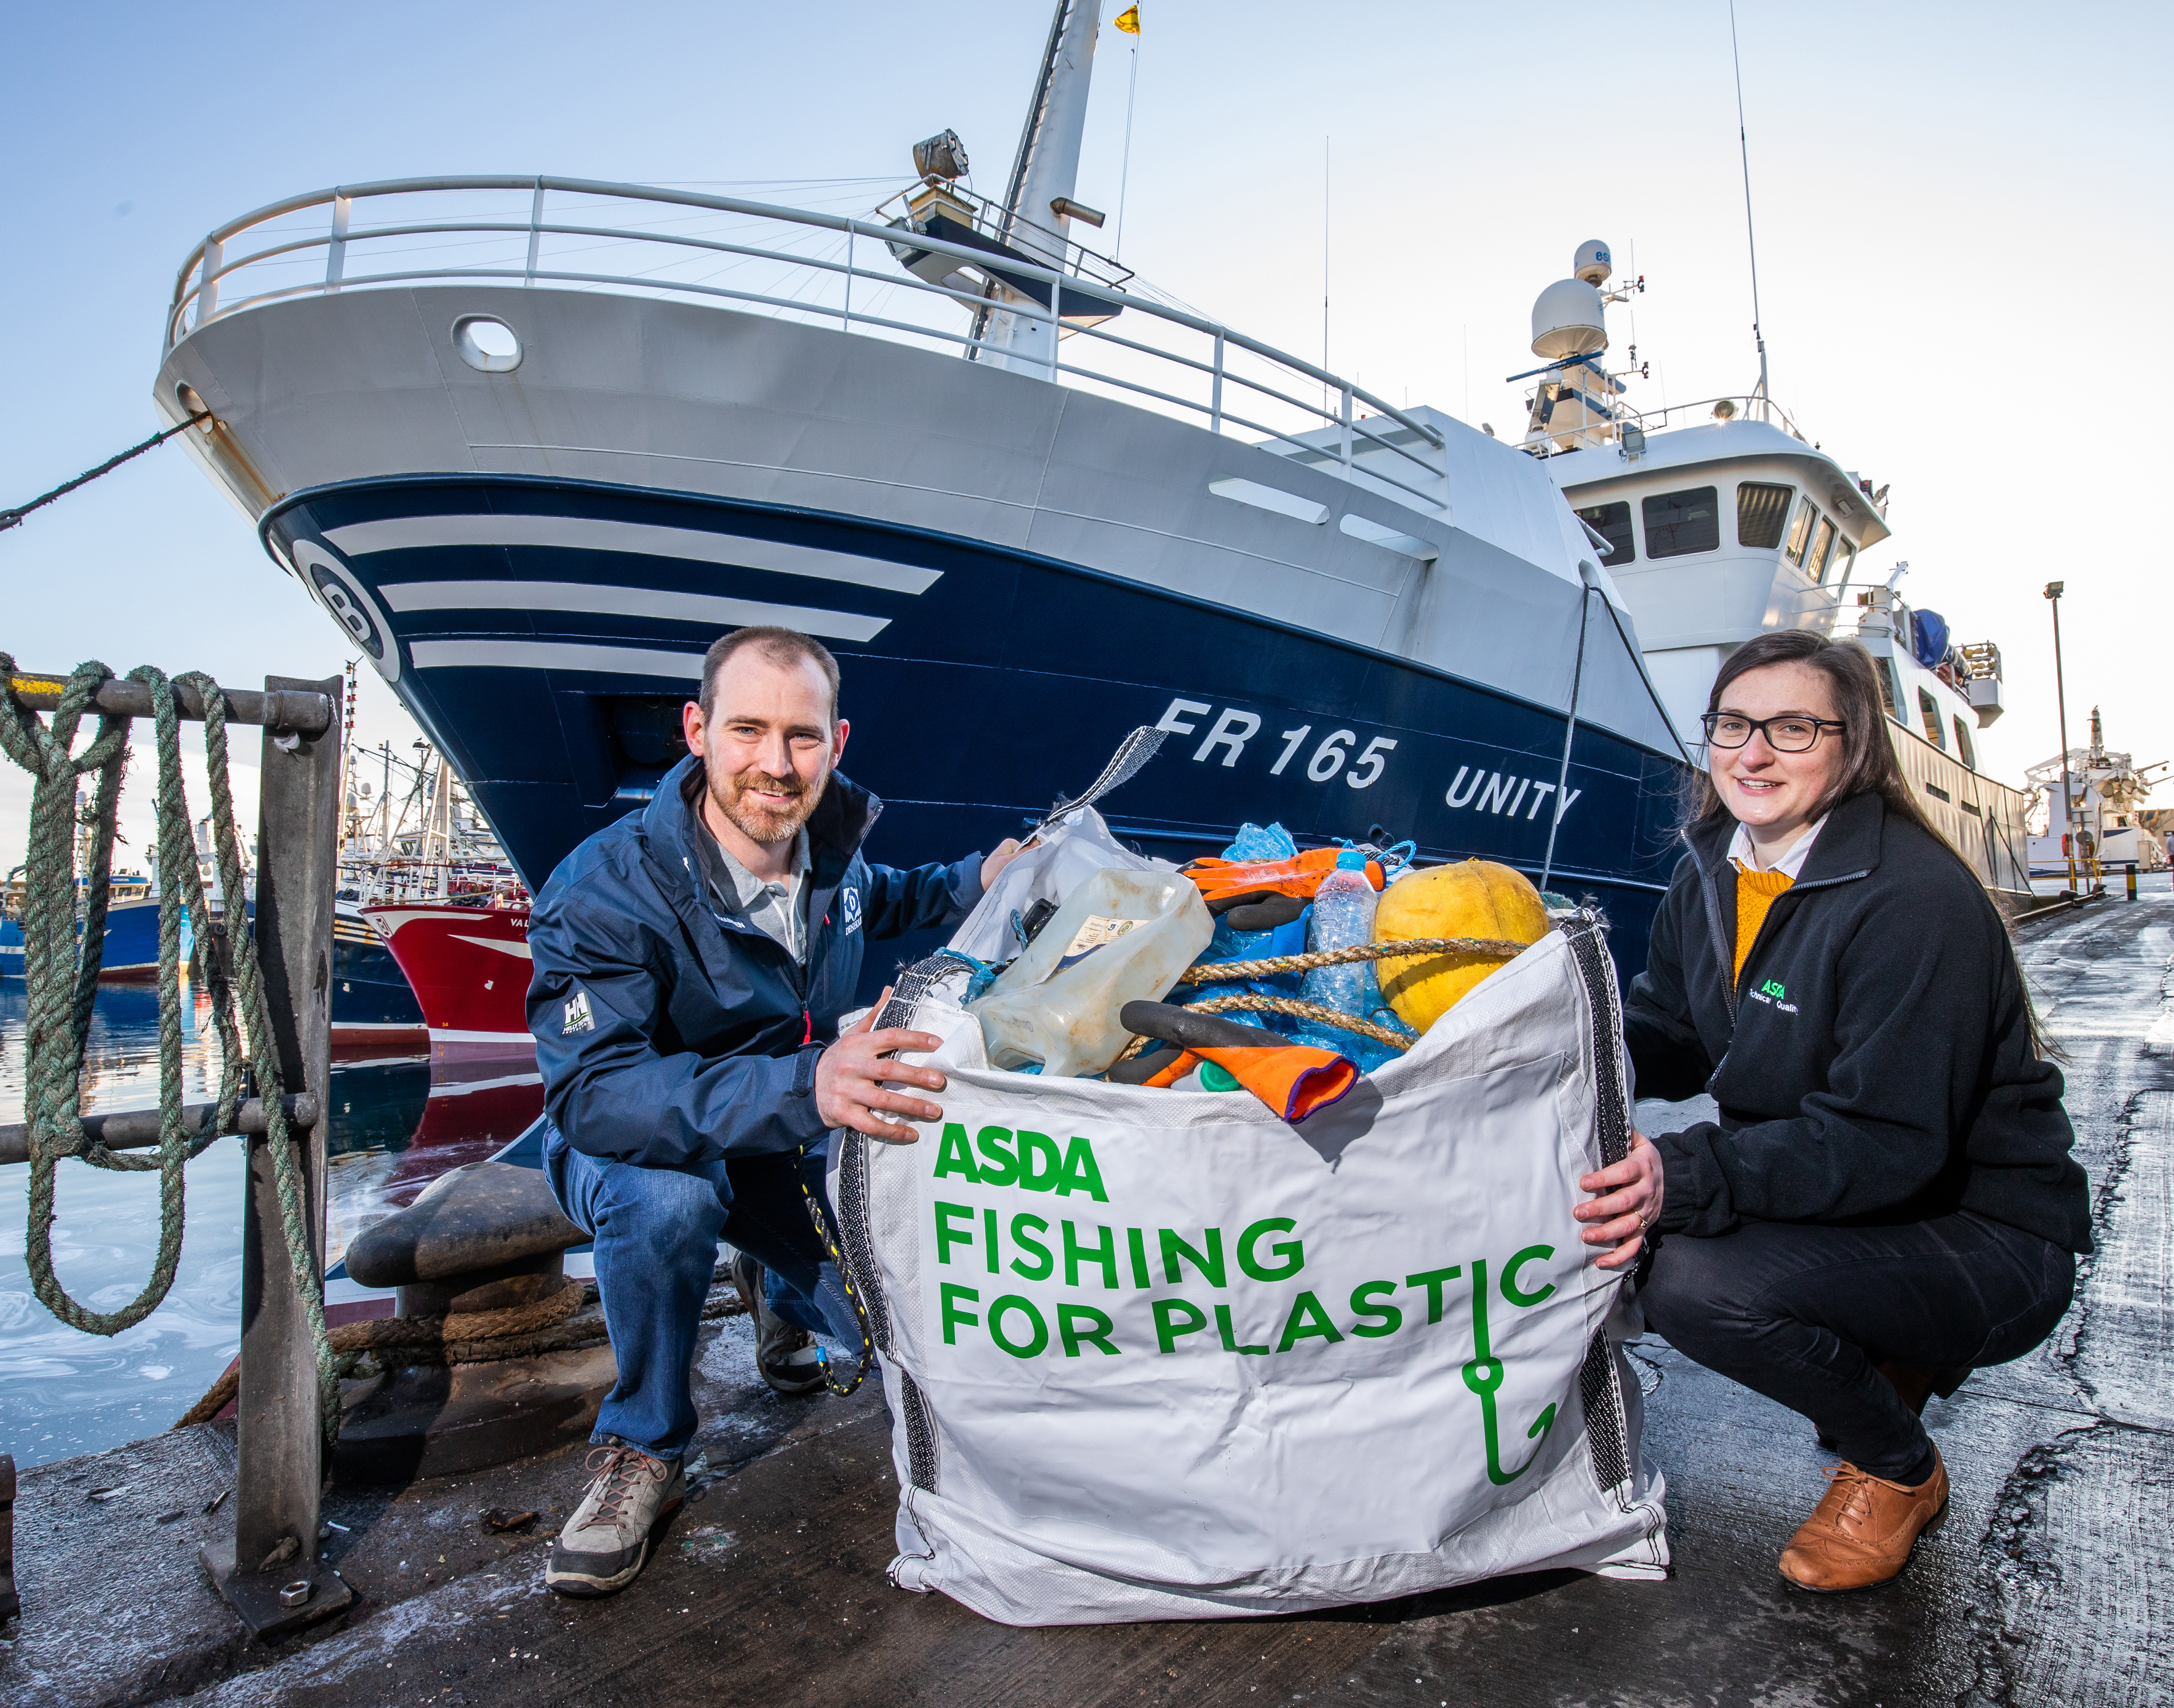 Sarah McCann from ASDA and David Bellany from Denholm Seafoods launch the Fishing for Plastic scheme.